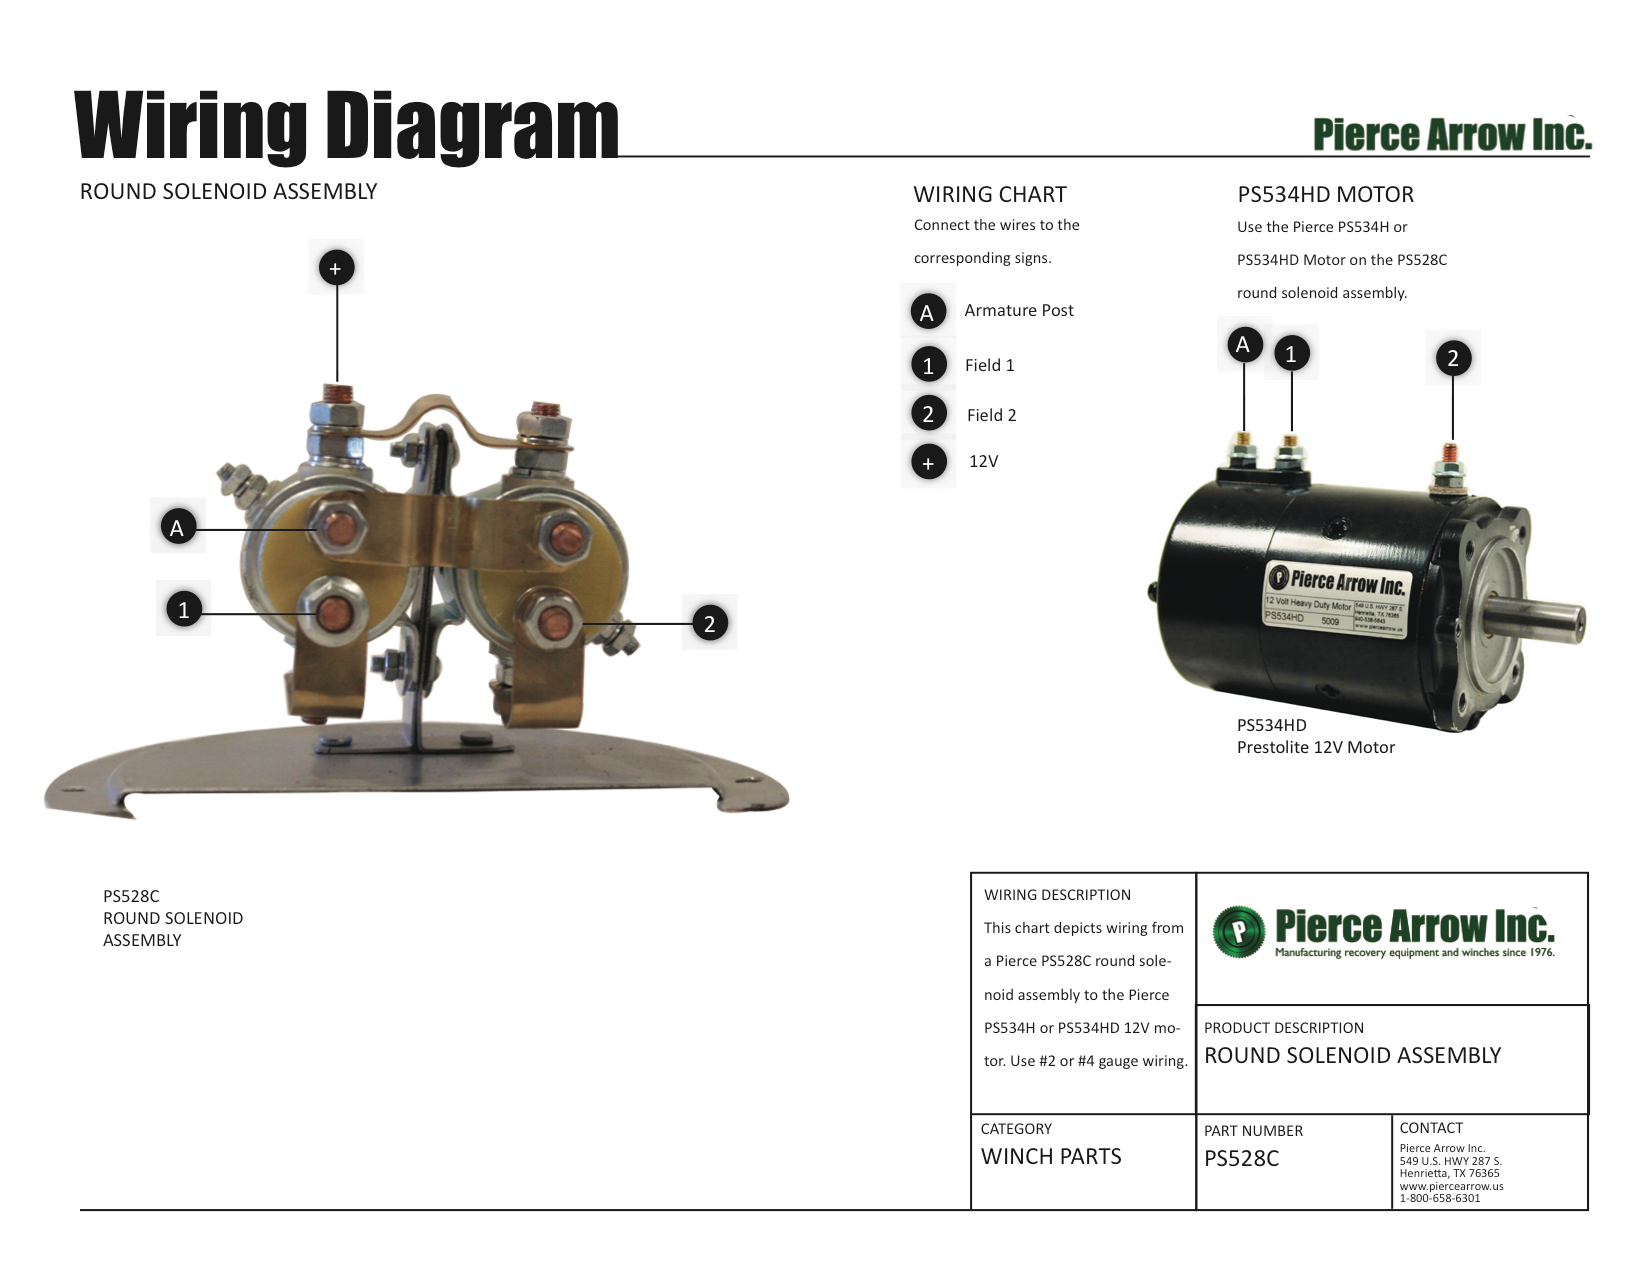 Pierce Arrow Winch Diagrams - Solenoid Wiring Diagram